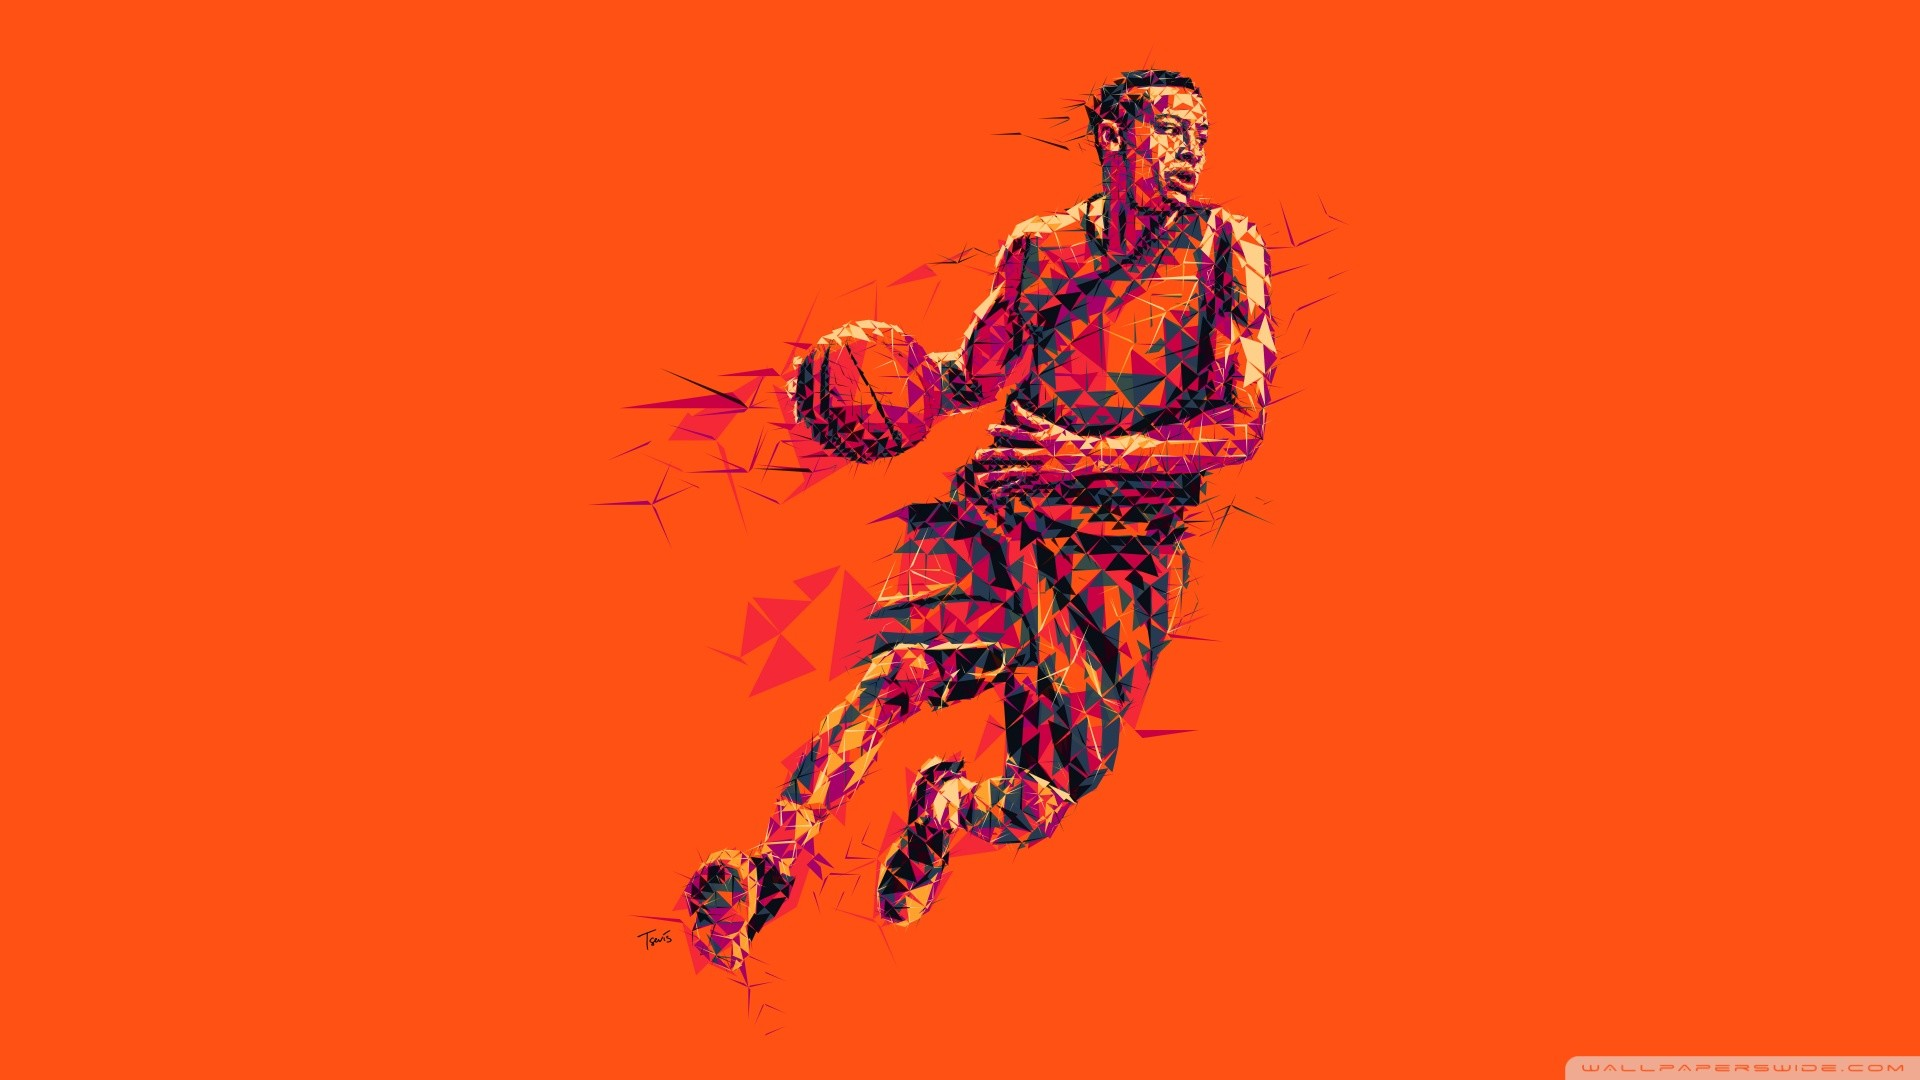 1920x1080 Hd Free Basketball Wallpapers Cool 1080p Smart Phone Background Photos Download Images High Quality Ultra 4k 1920A 1080 Wallpaper HD